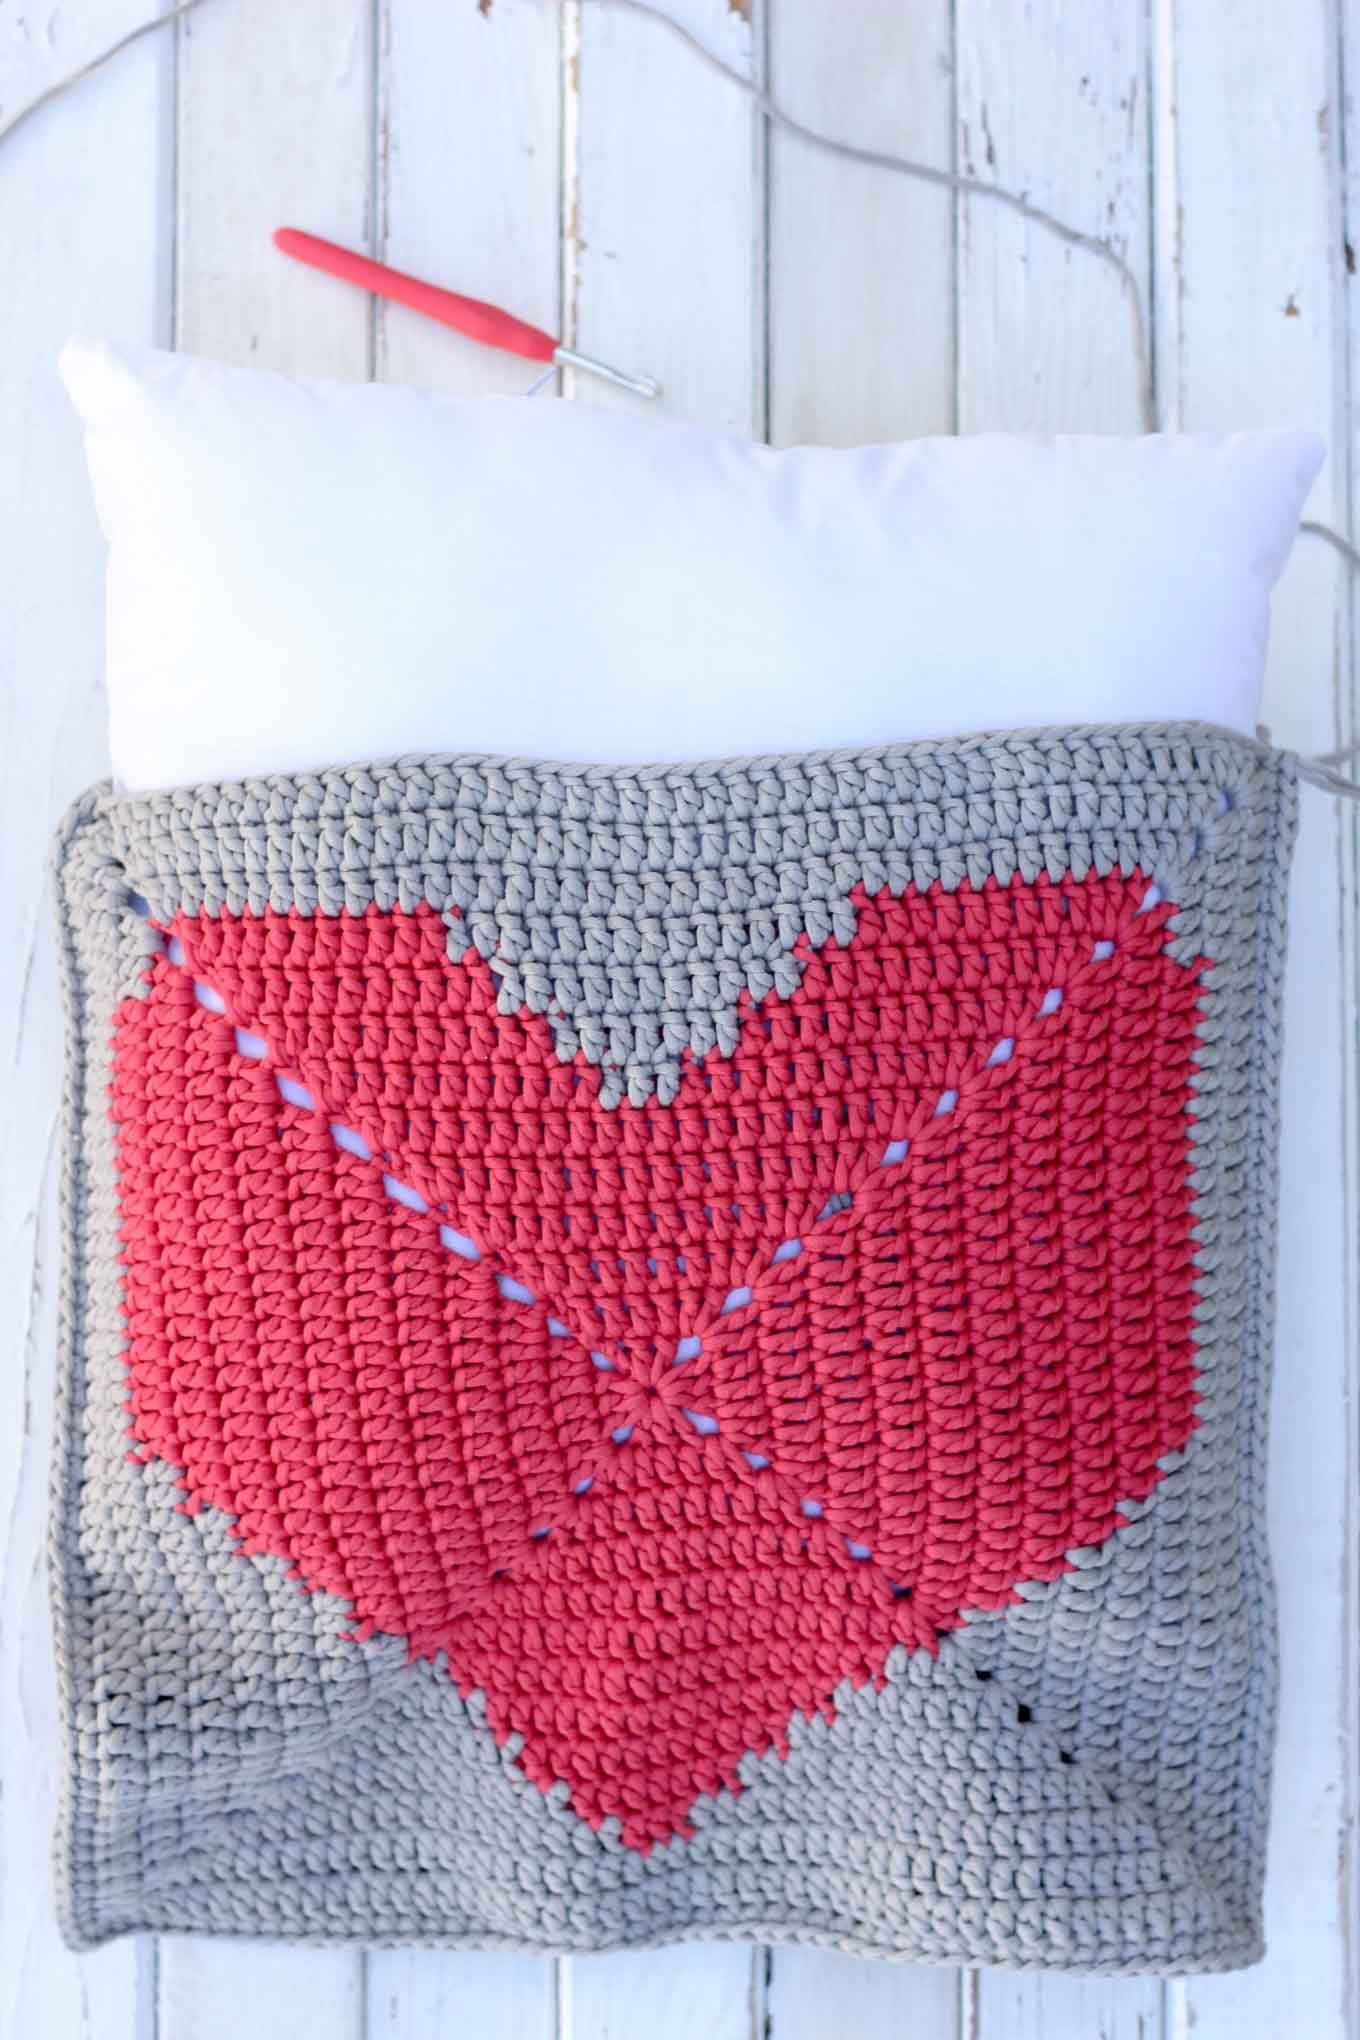 House or dorm warming free crochet pillow pattern crochet pillow house or dorm warming free crochet pillow pattern bankloansurffo Image collections